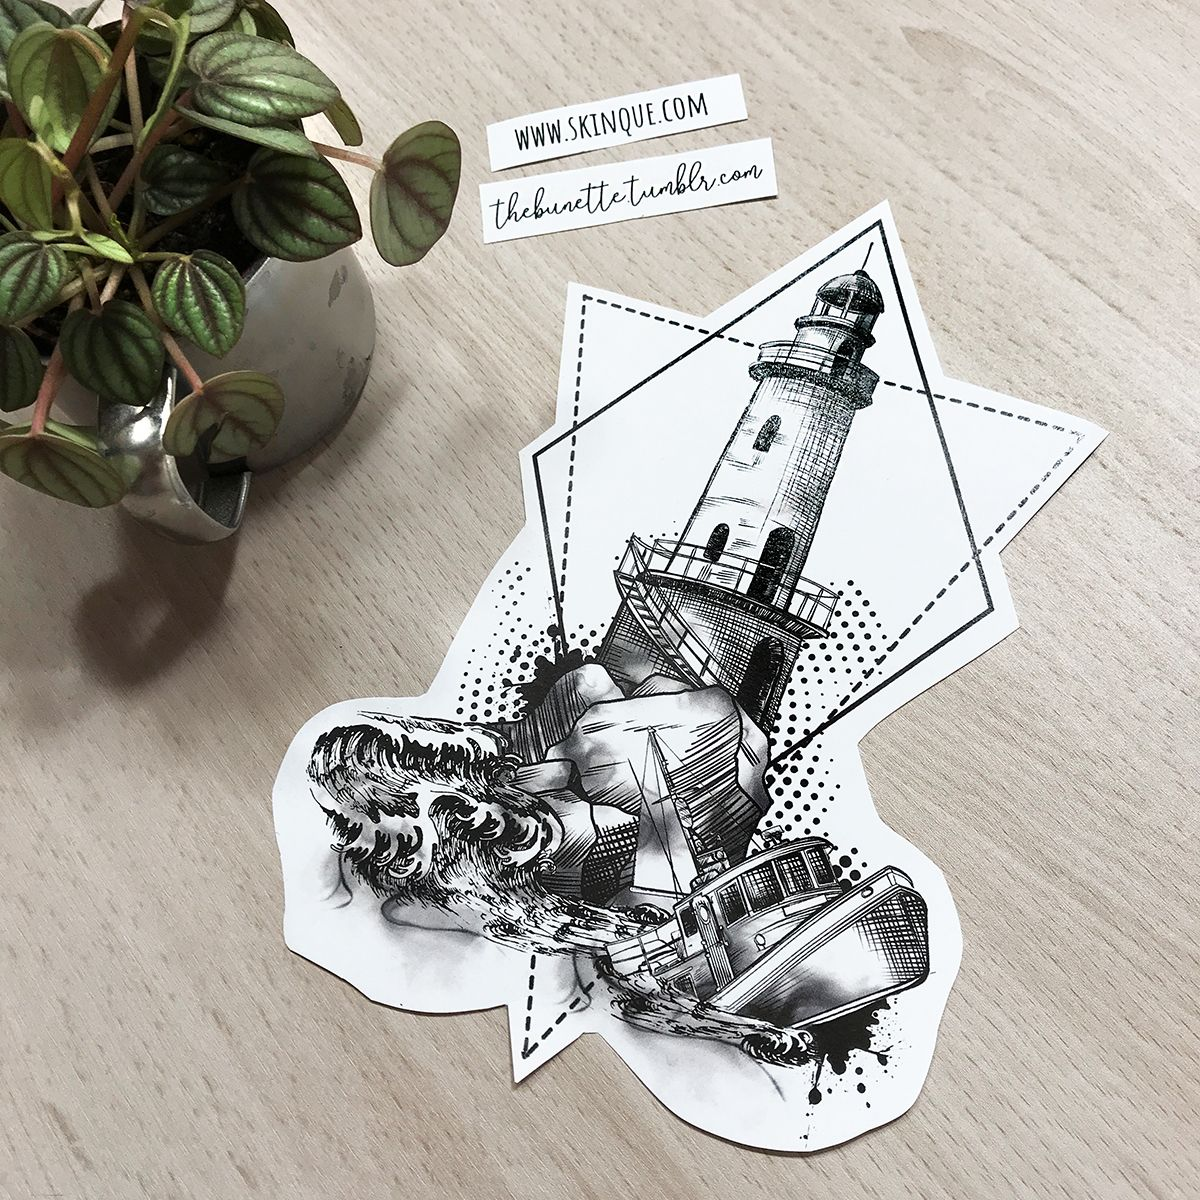 Lighthouse Boat Geometric Abstract Sketch Tattoo Design Illustration Lighthouse Tattoo Sketch Tattoo Design Tattoo Sketches